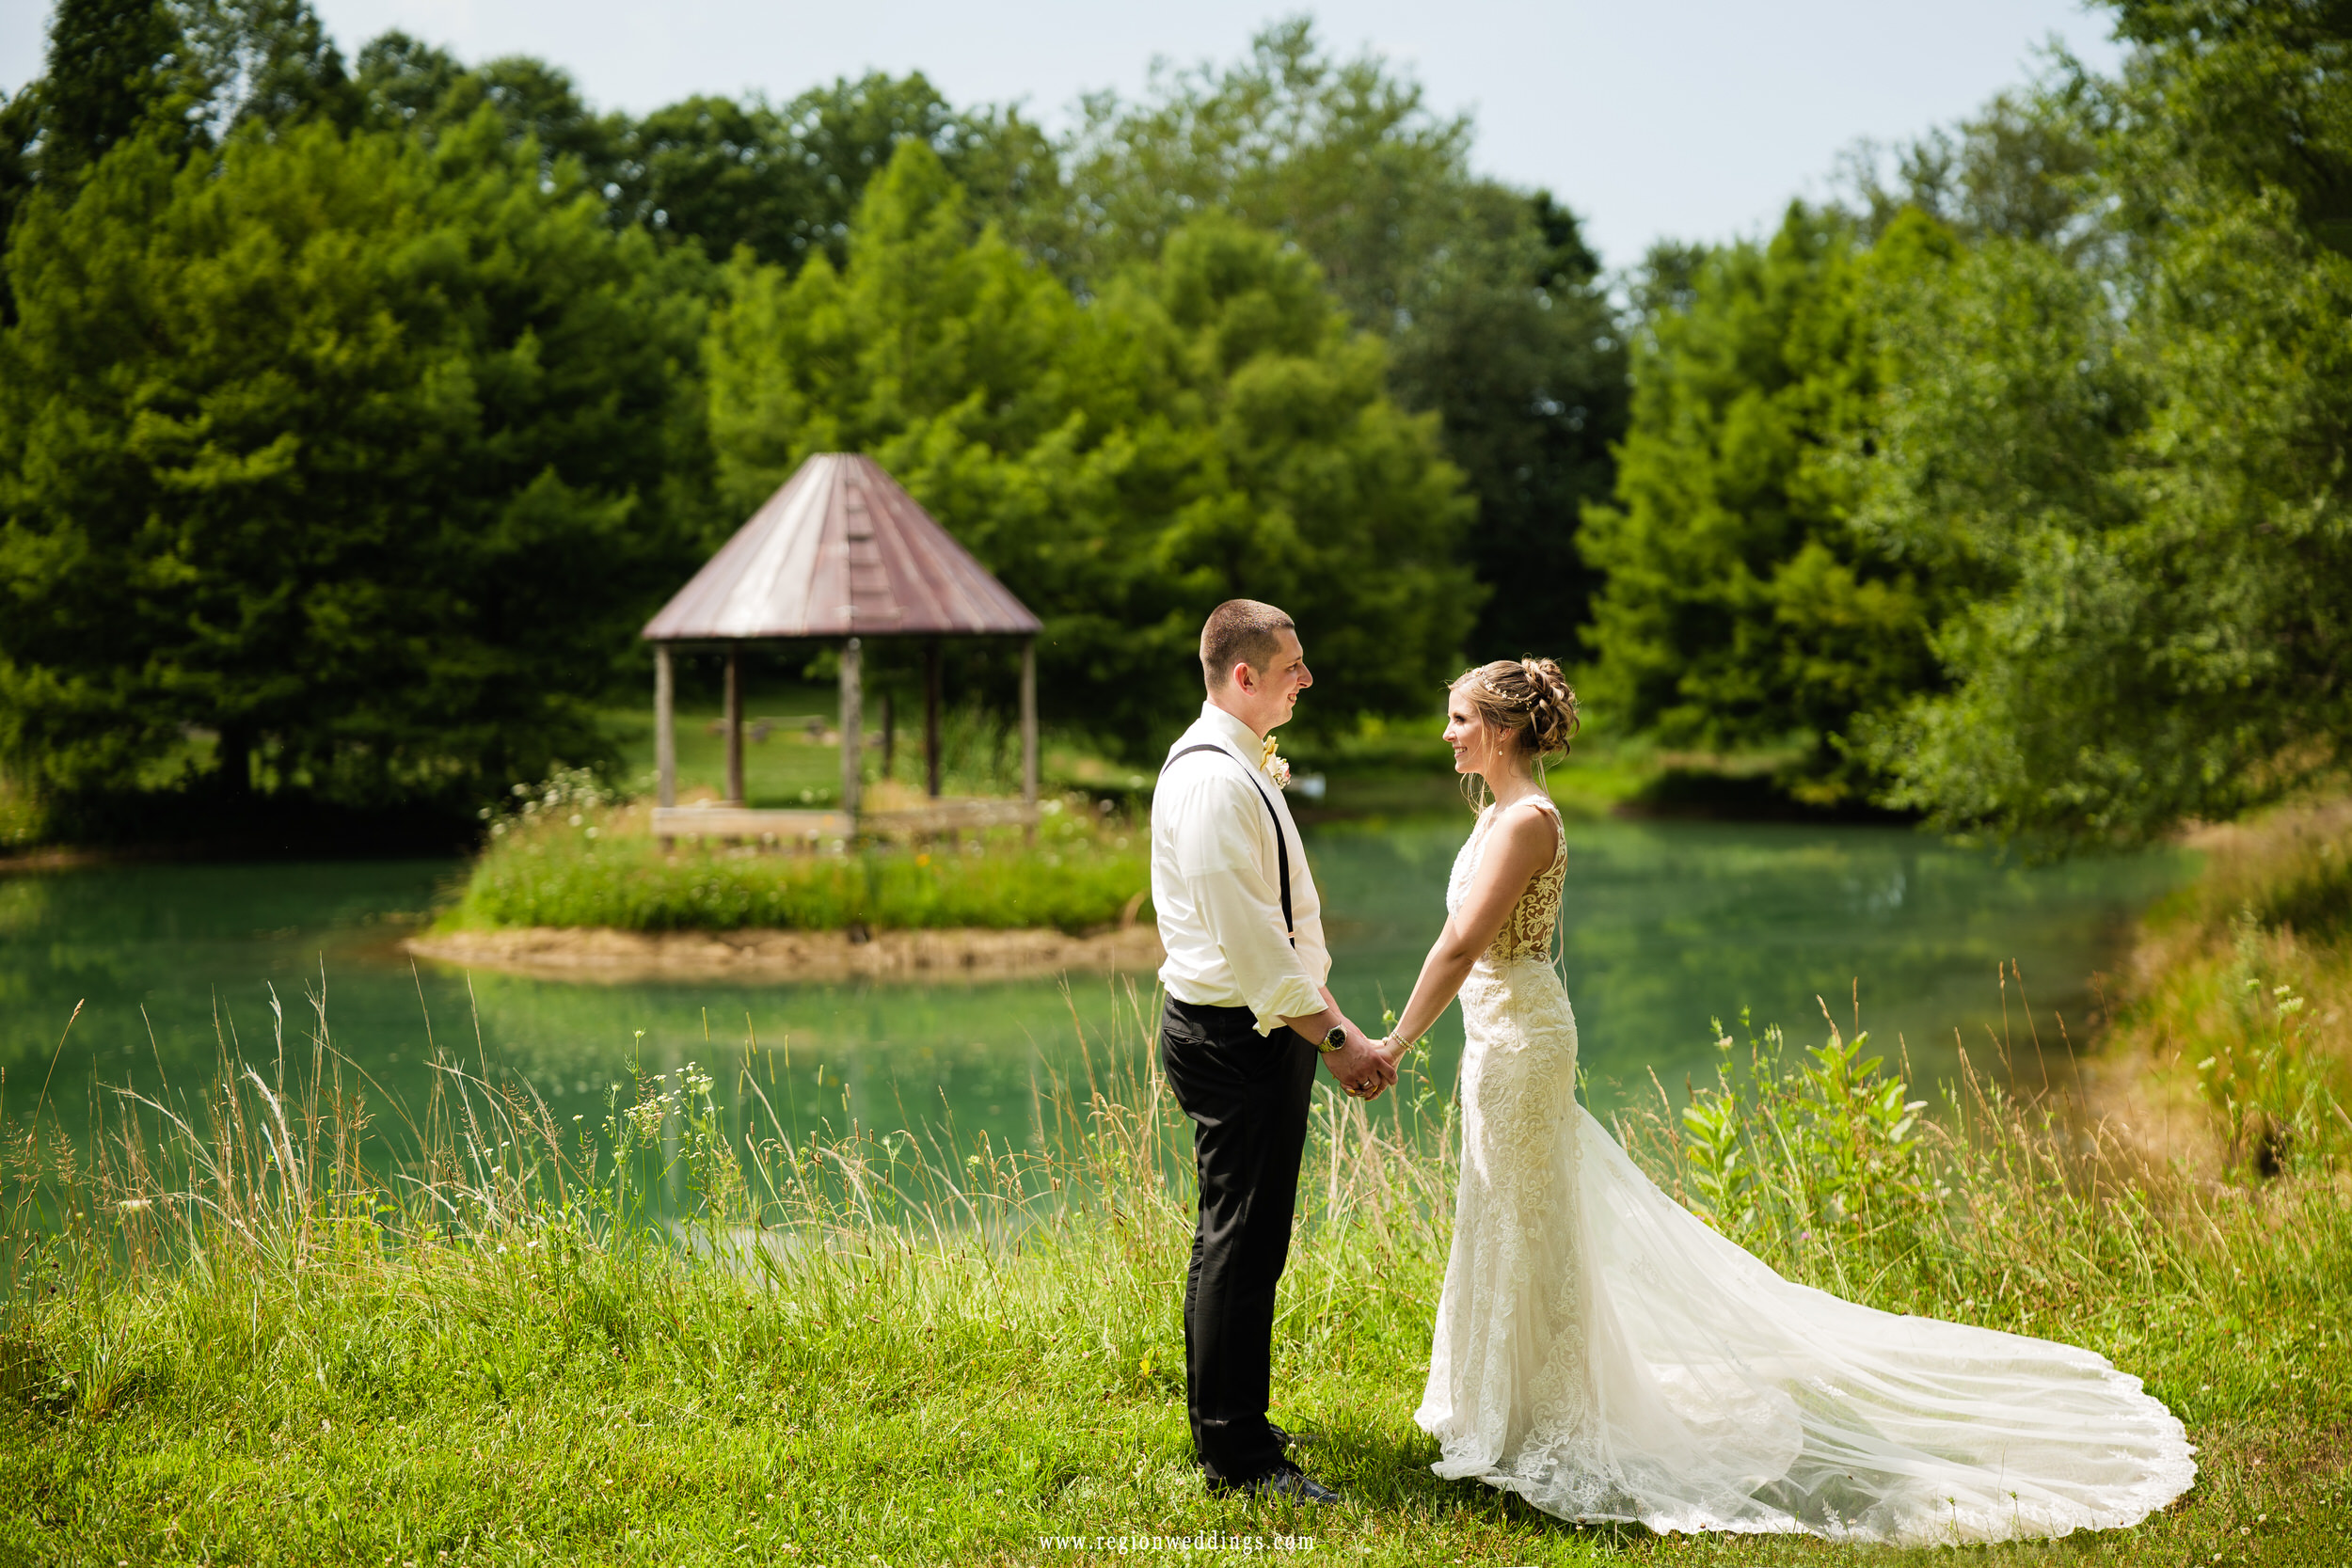 Bride and groom in front of the lakeside gazebo at Heston Hills Event Center in Laporte, Indiana.